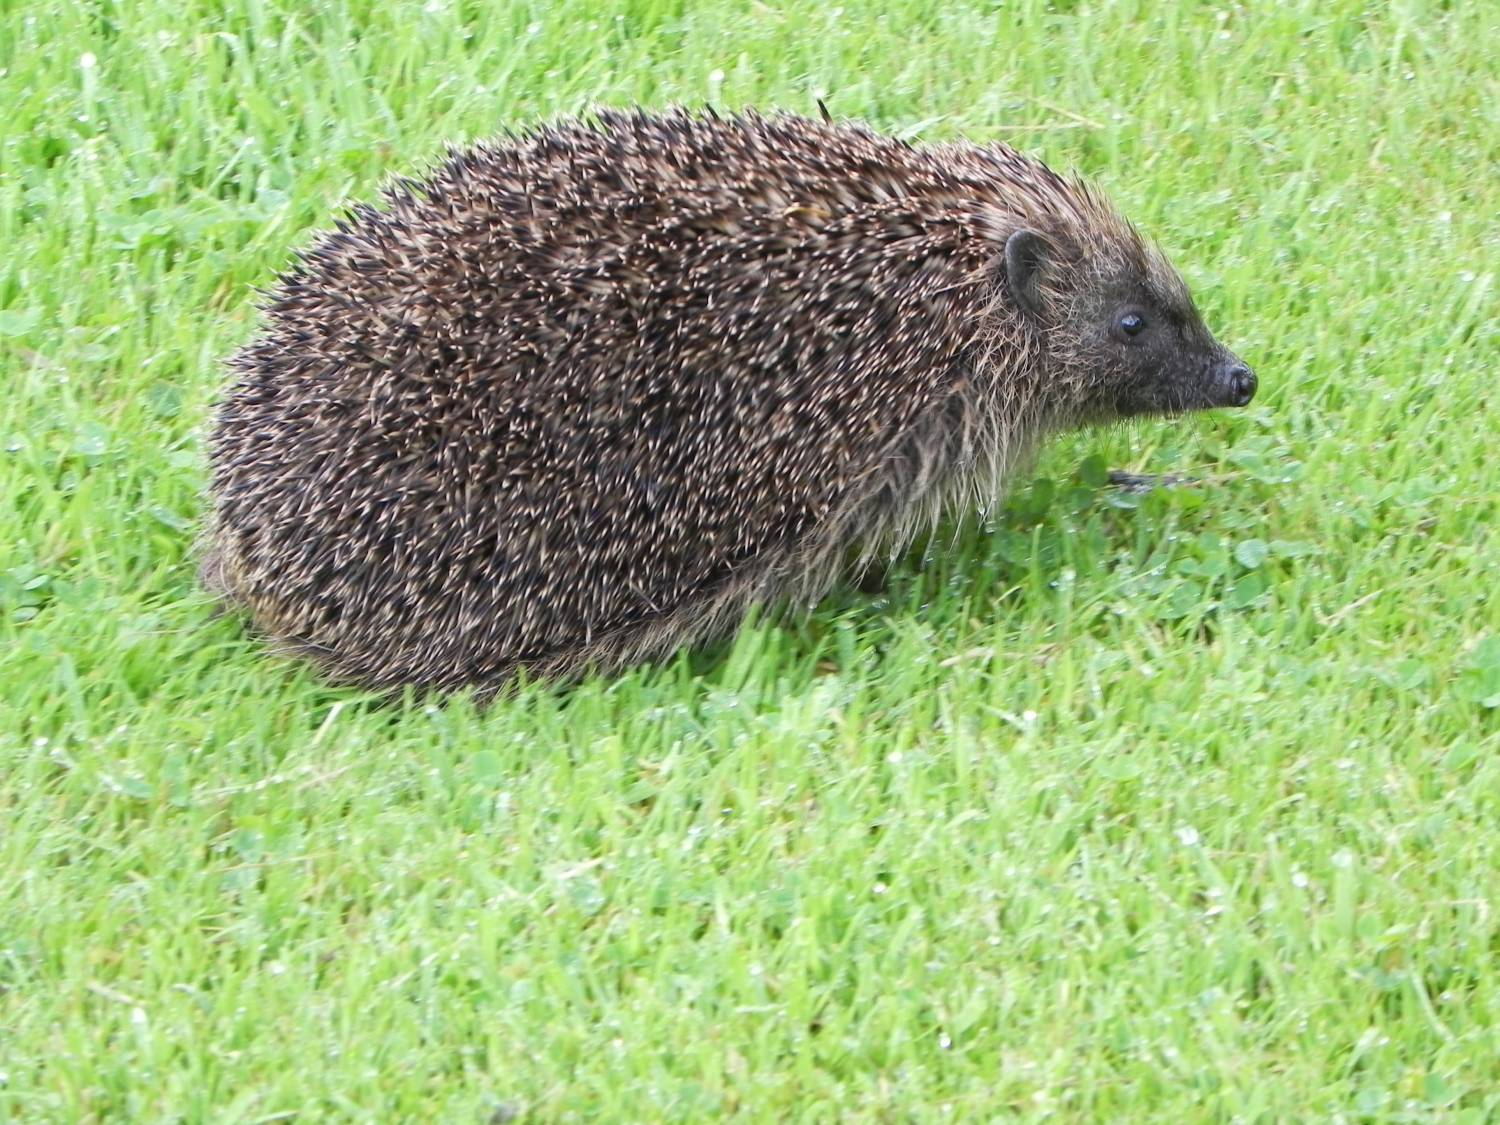 Hegdehog scurries across the lawn